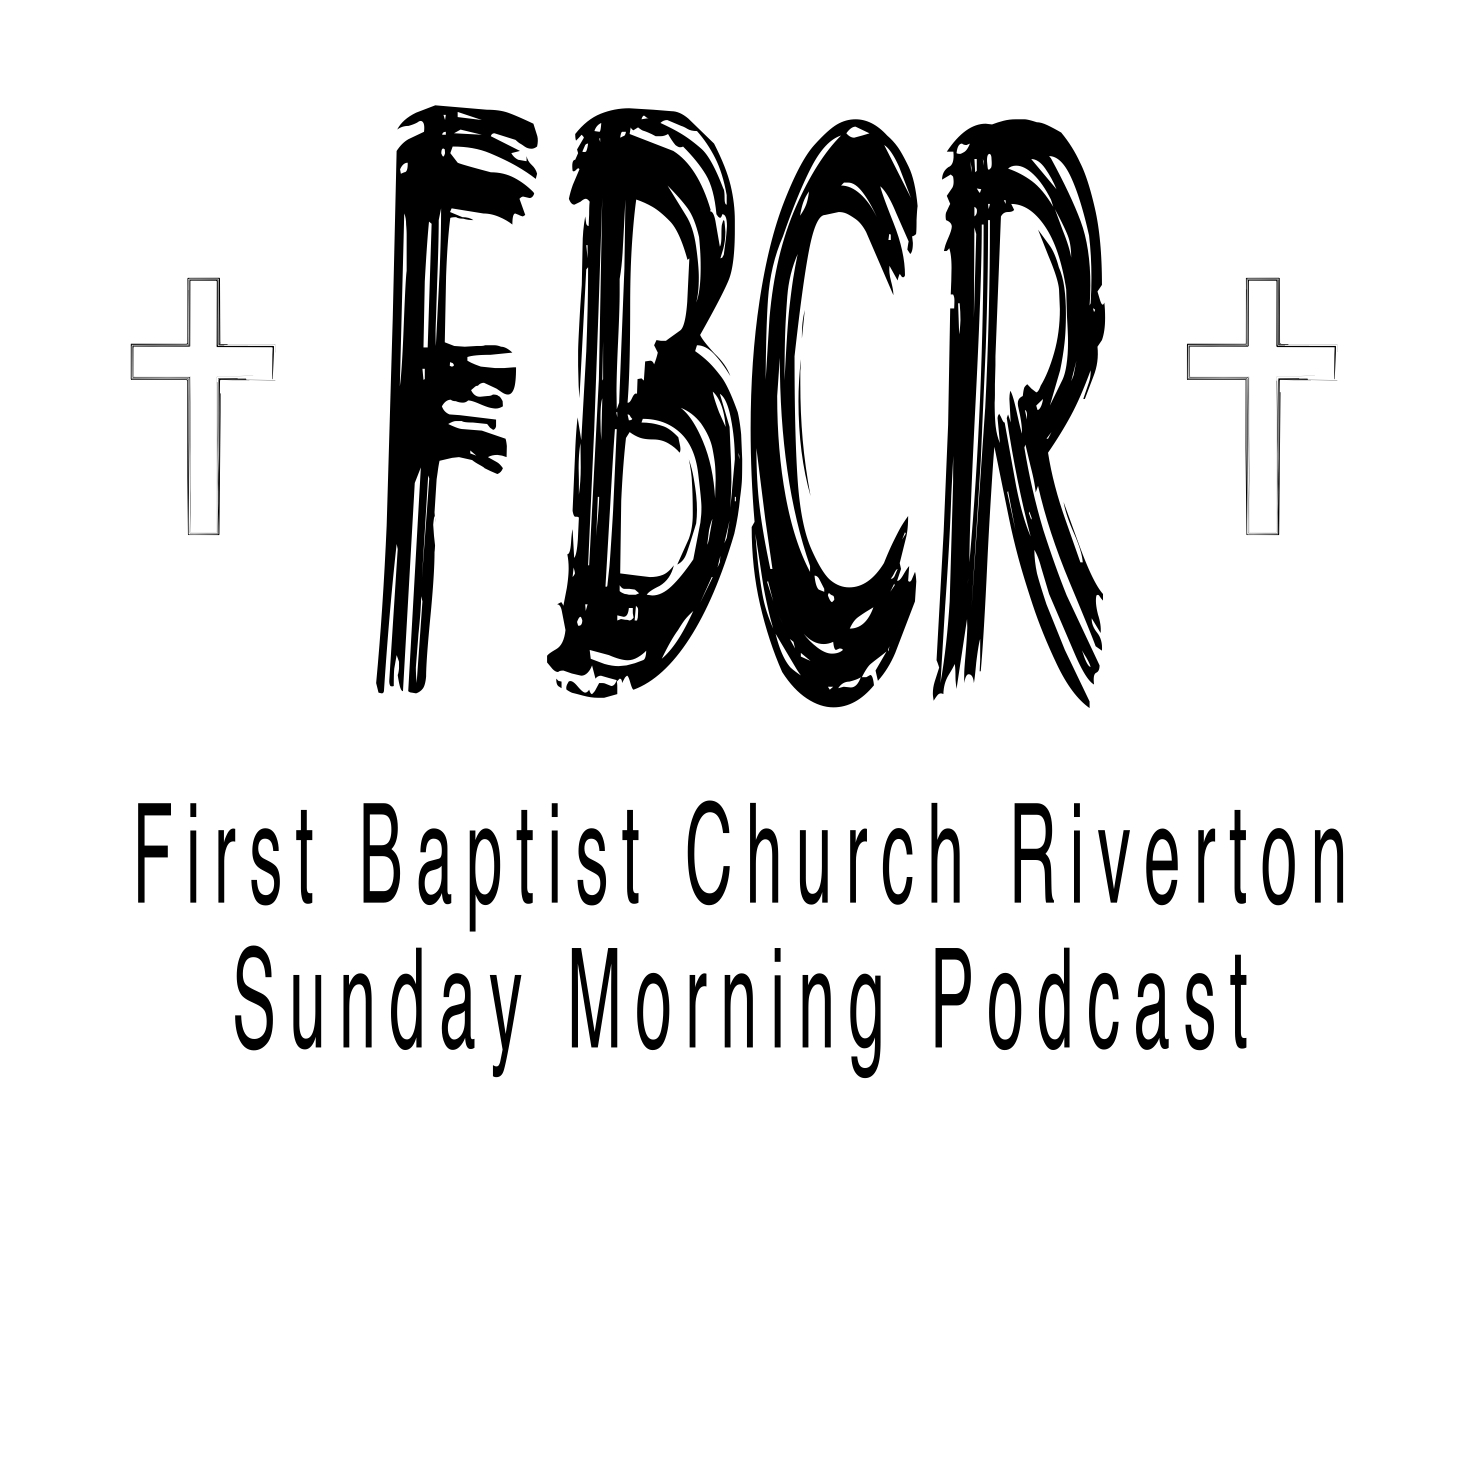 FBCR Podcast EP58 - Sunday Morning Message from Bro. Michael Pearce